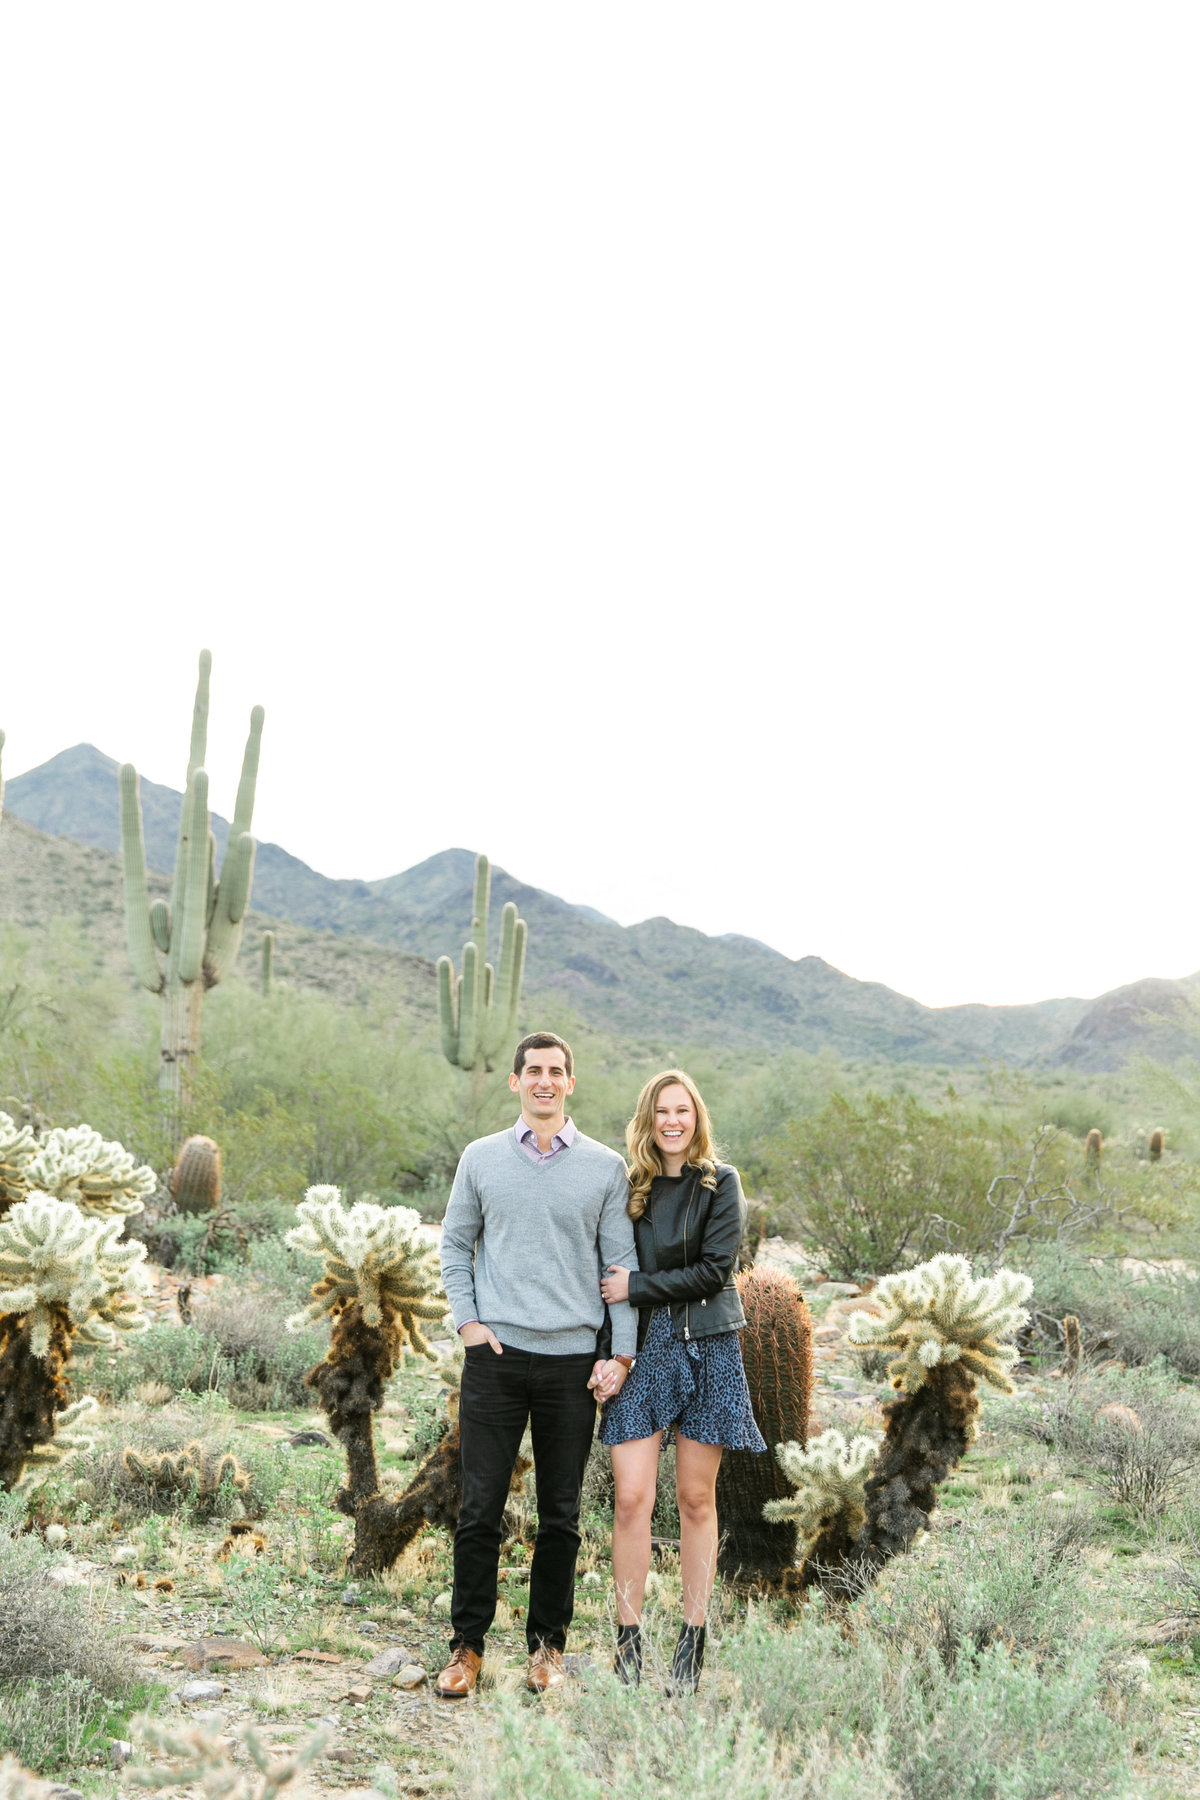 Karlie Colleen Photography - Katherine & Mike Arizona Engagement session- Andaz Wedding-41